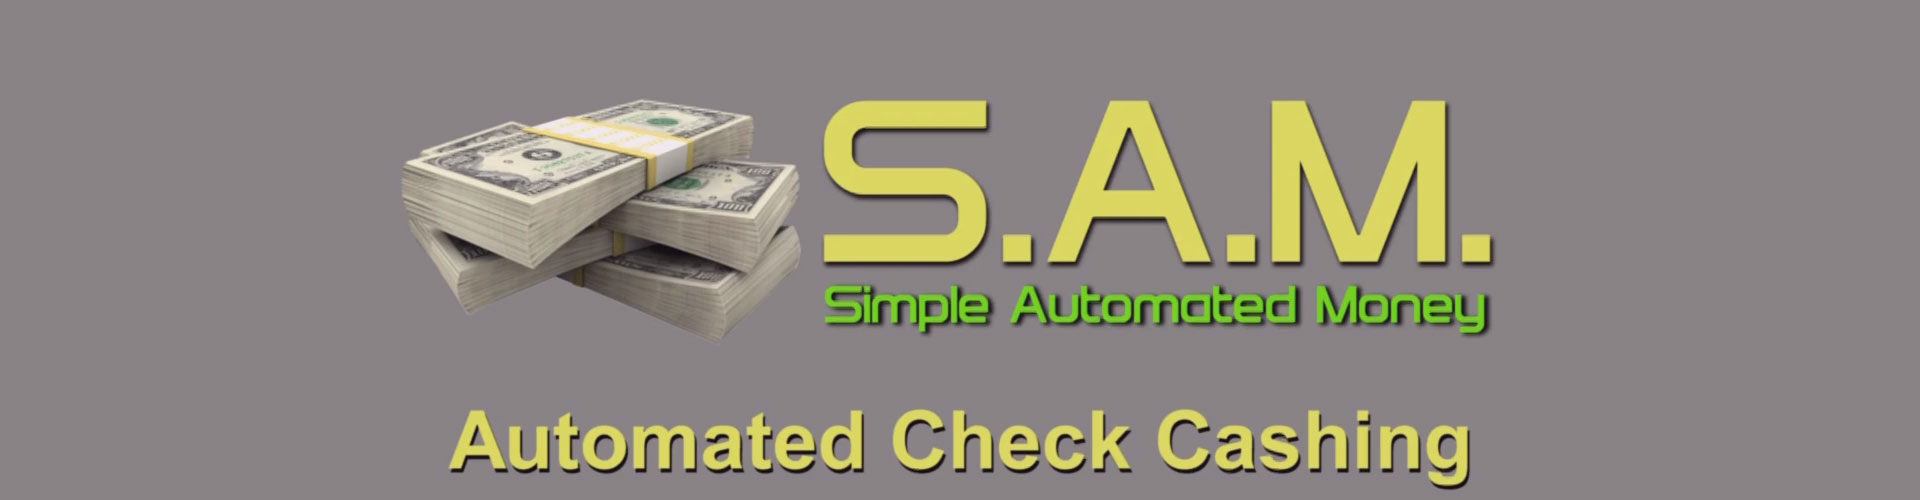 Simple Automated Money